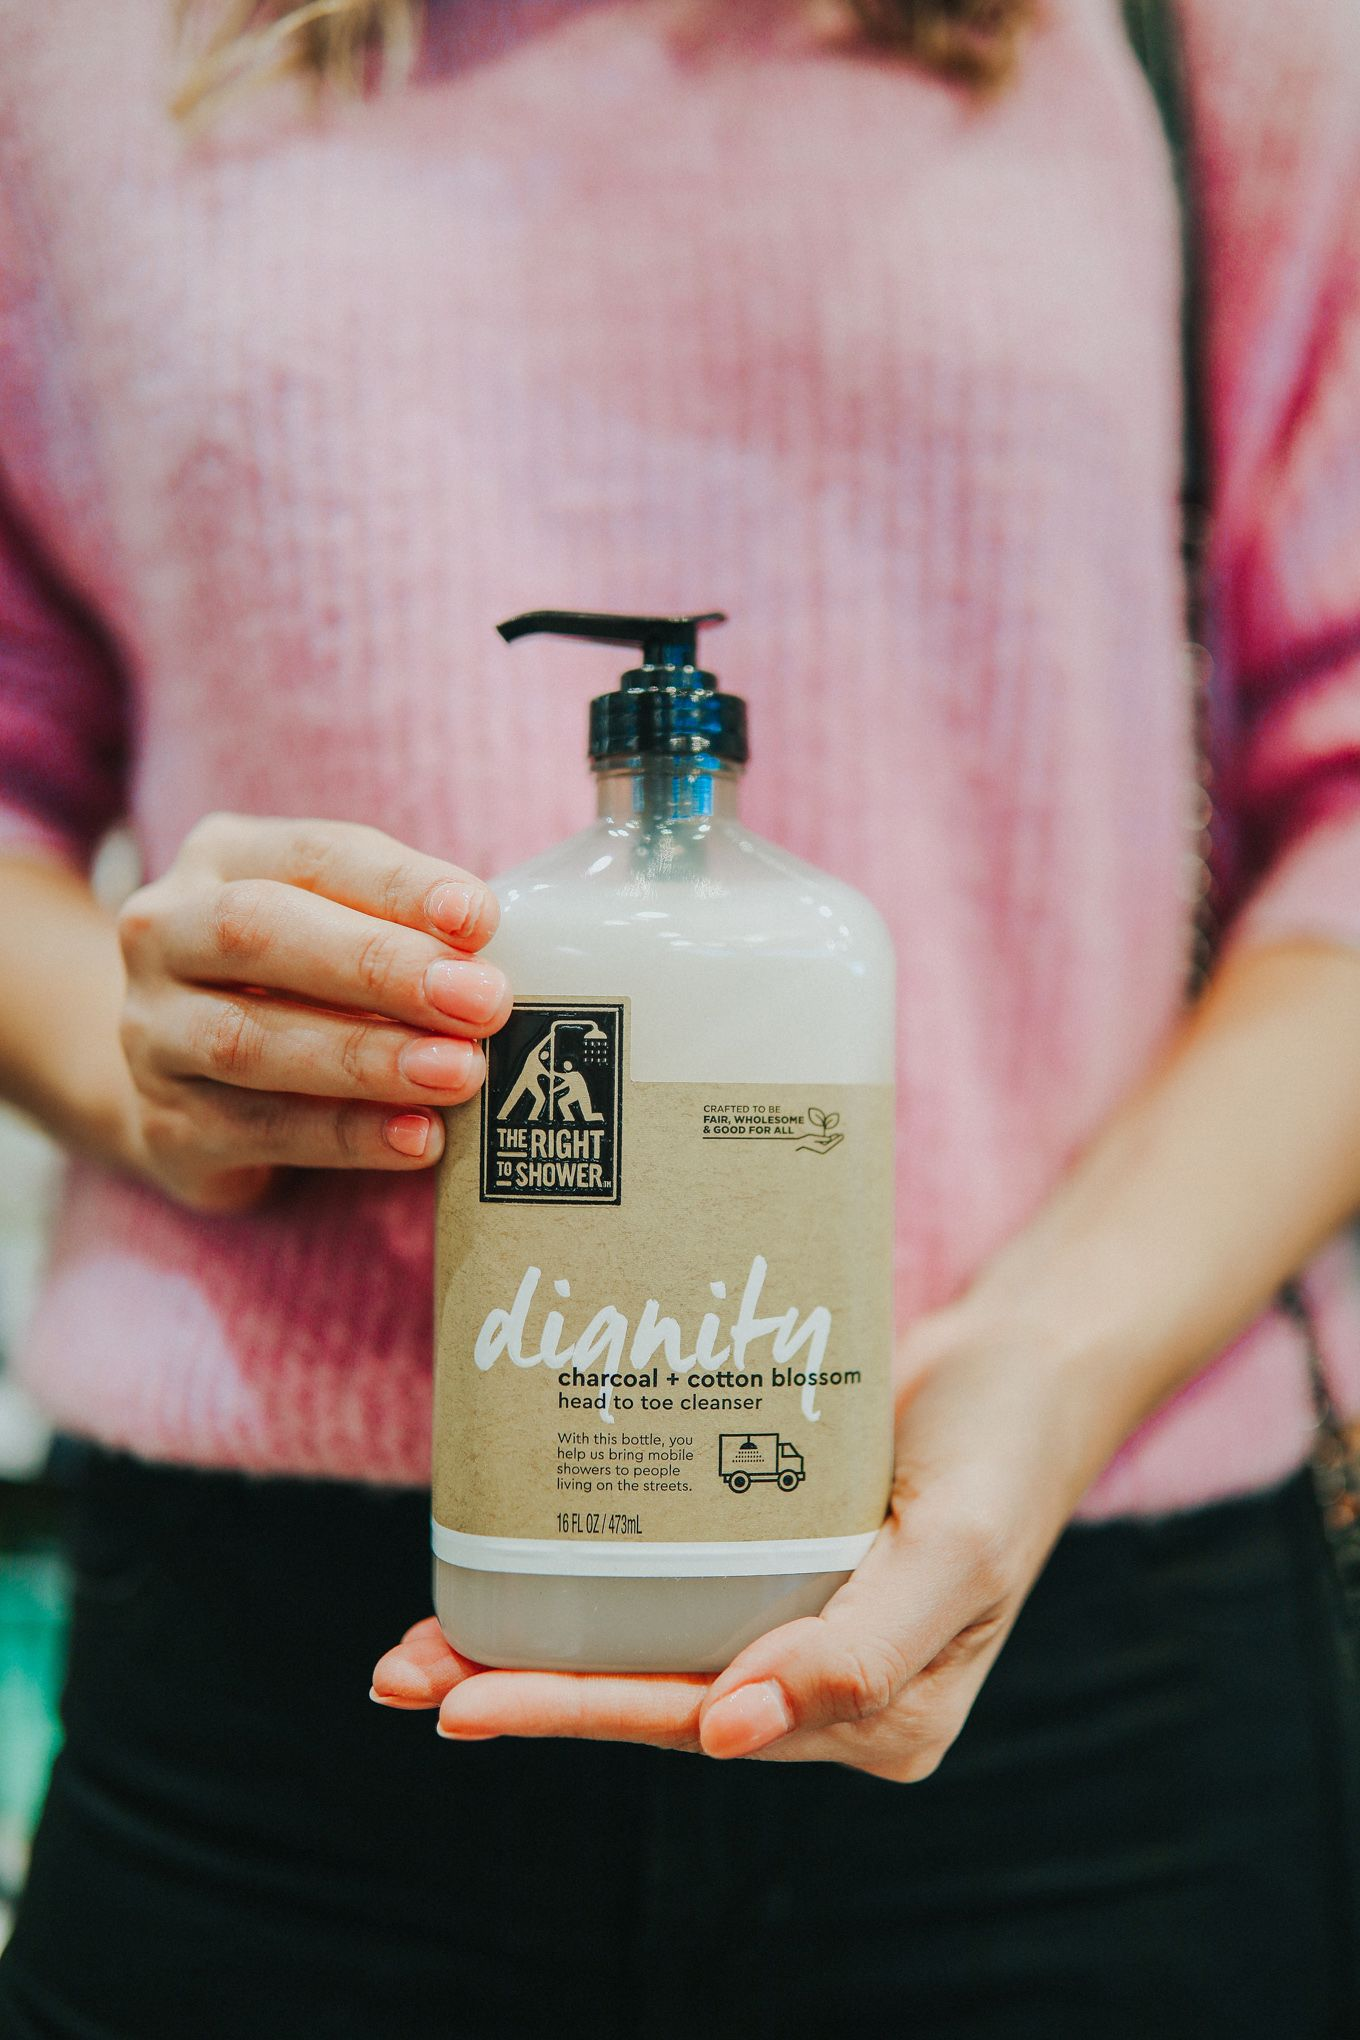 Buy This Body Wash Help Provide Free Showers For The Homeless Body Wash Paraben Free Products Body